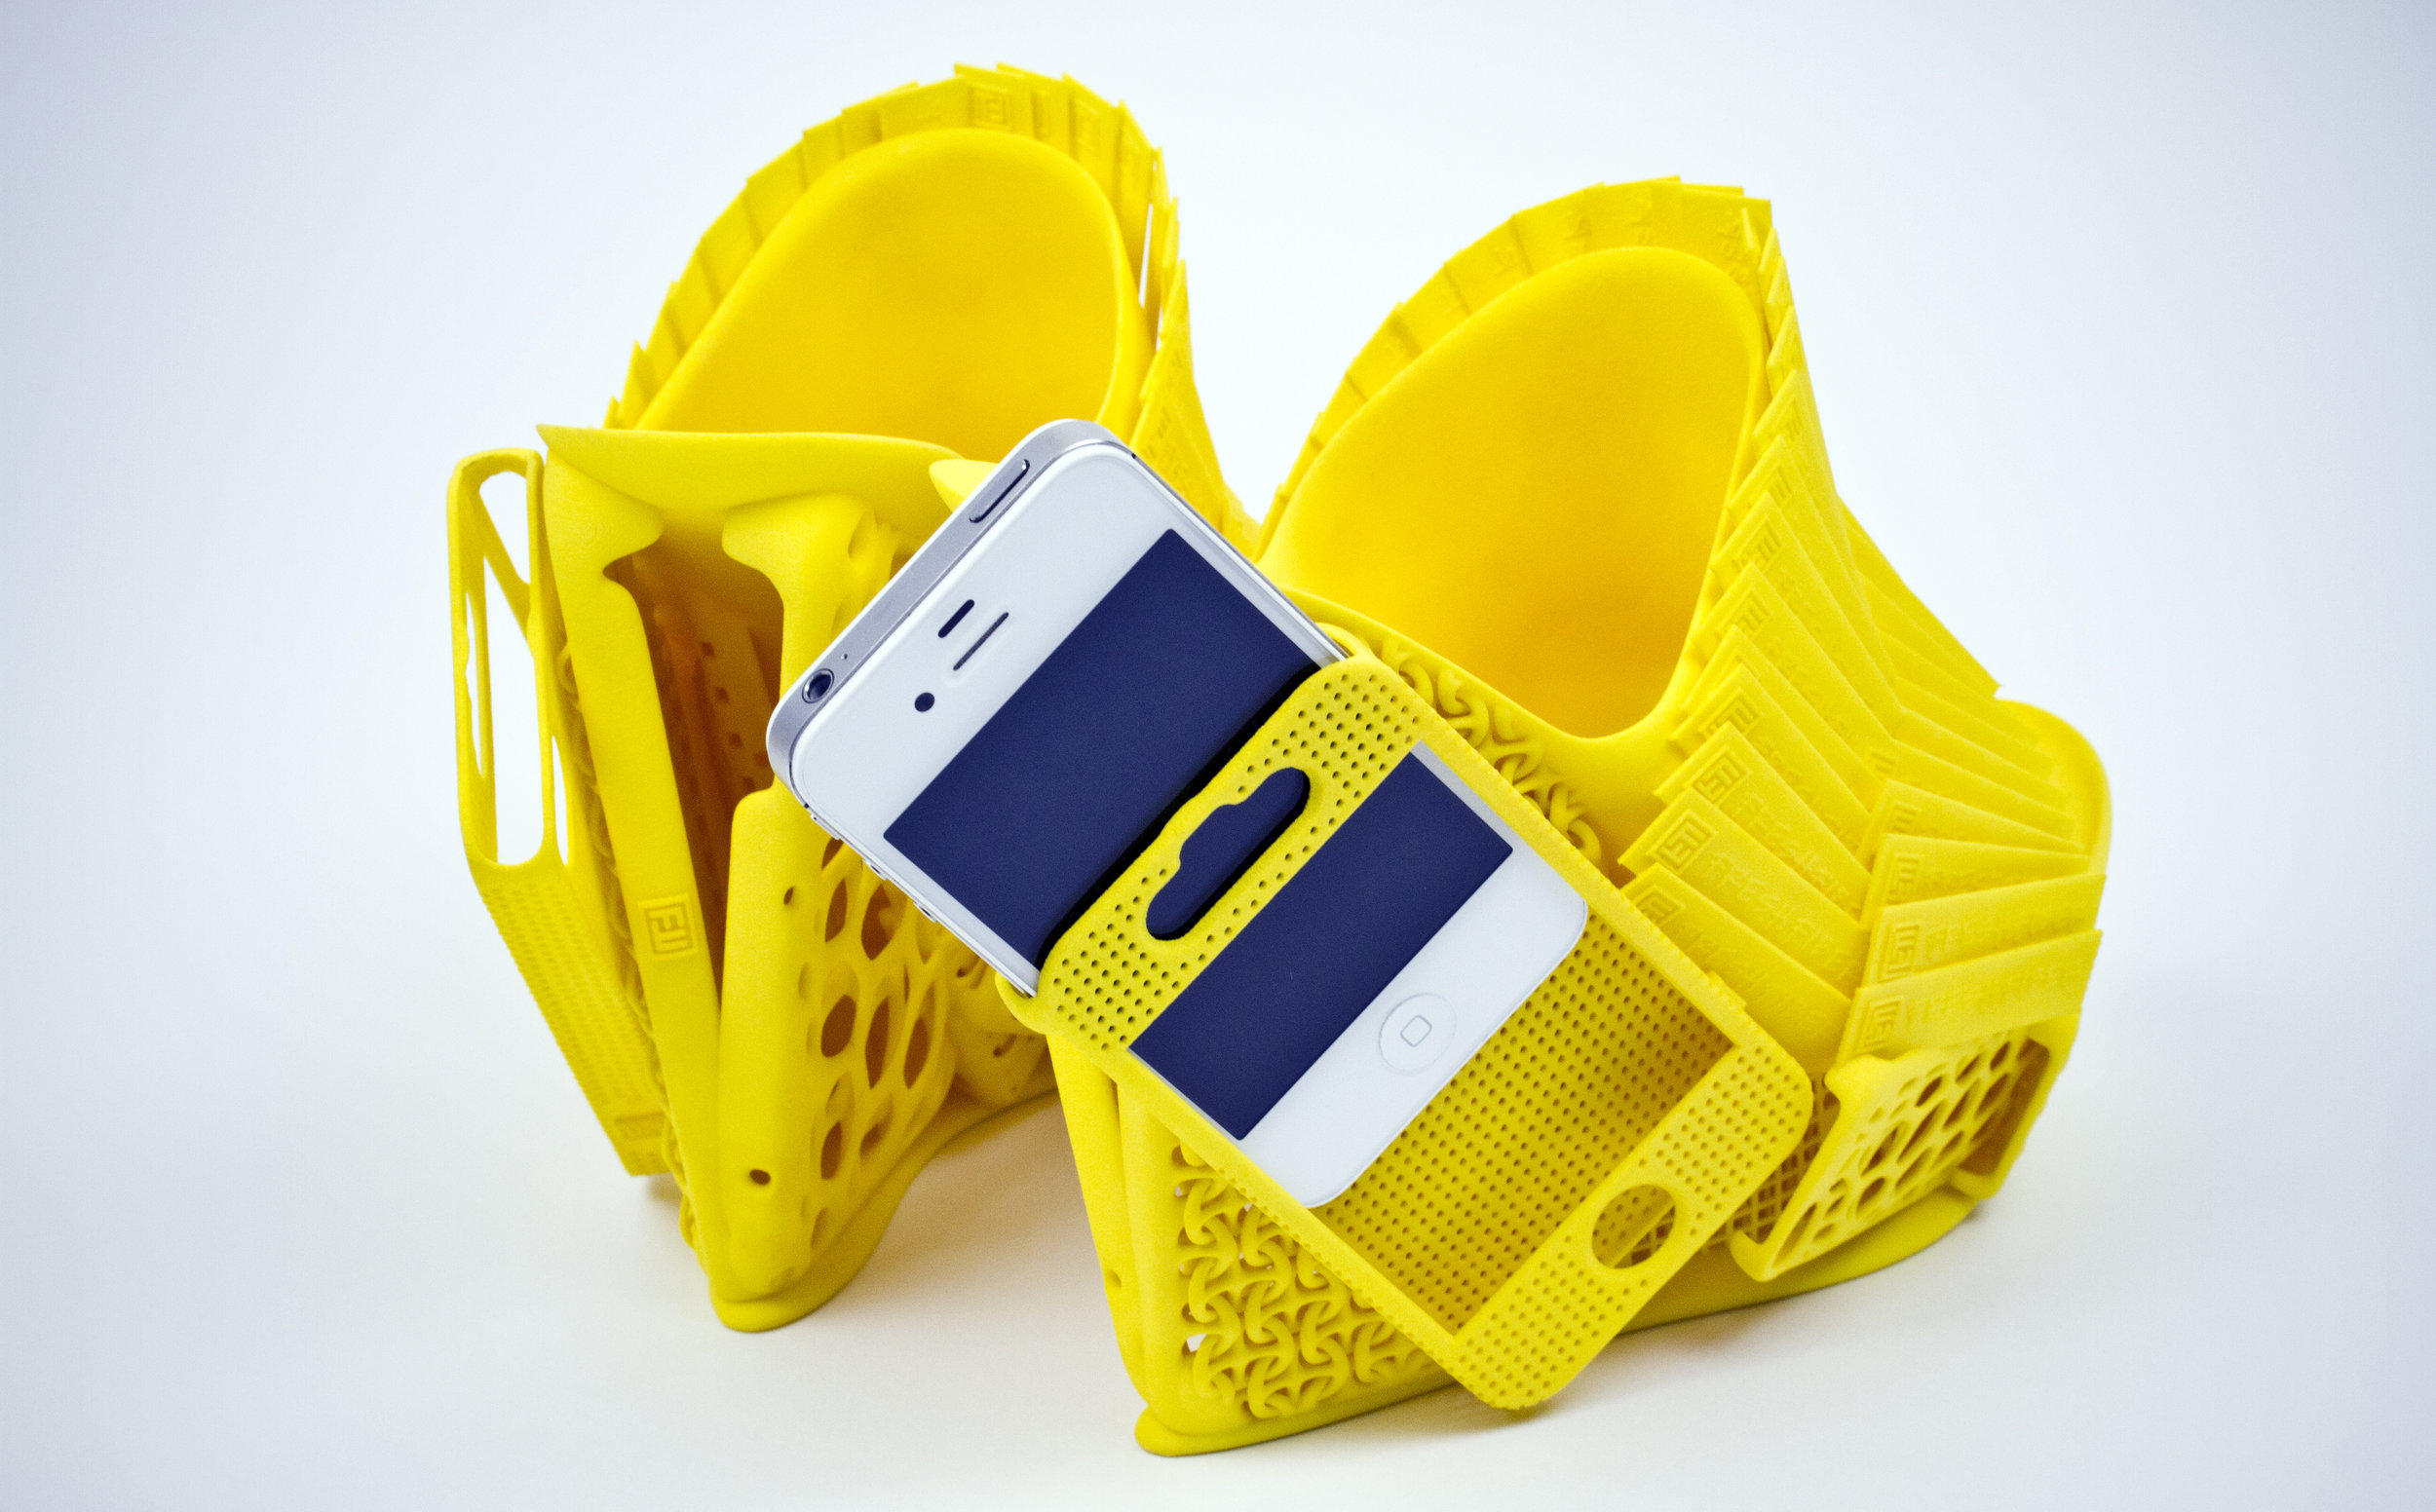 Mashup phone shoes